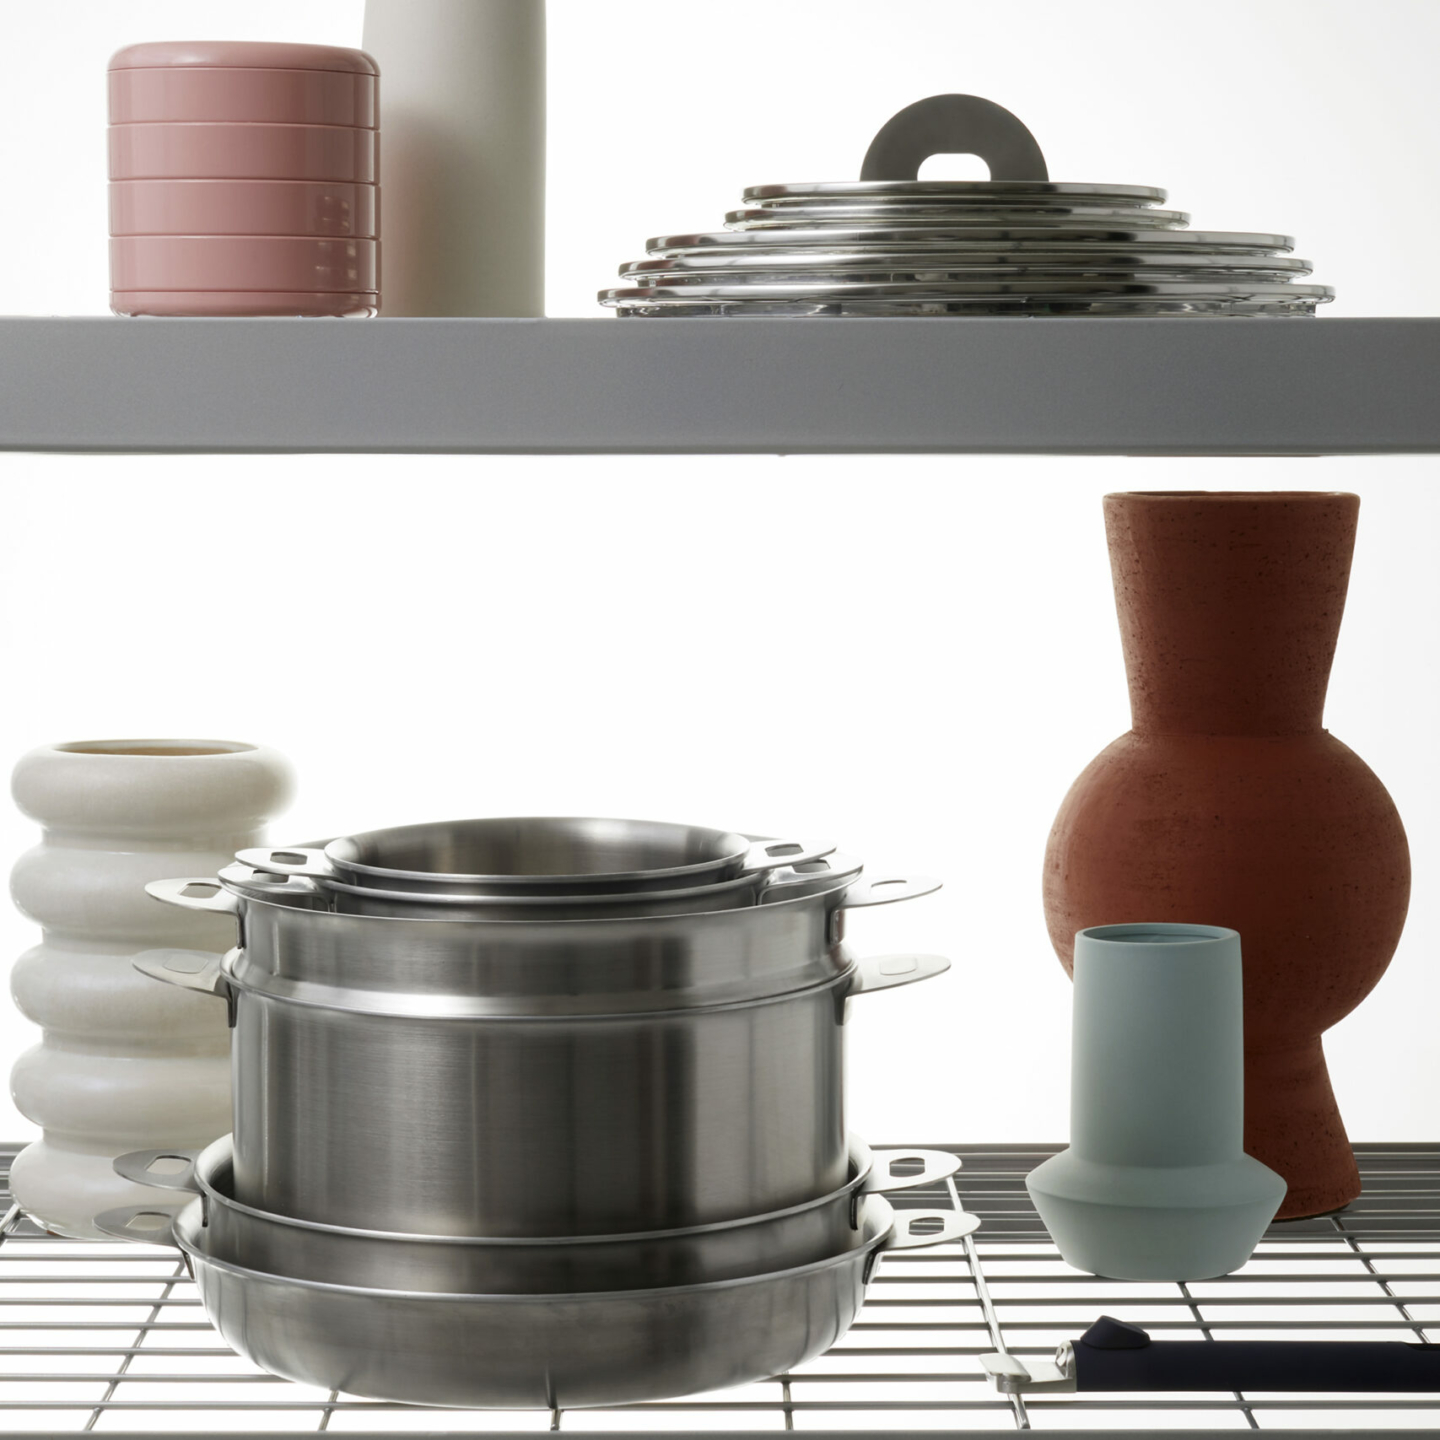 ENSEMBL Stackware lids and cookware in cupboard